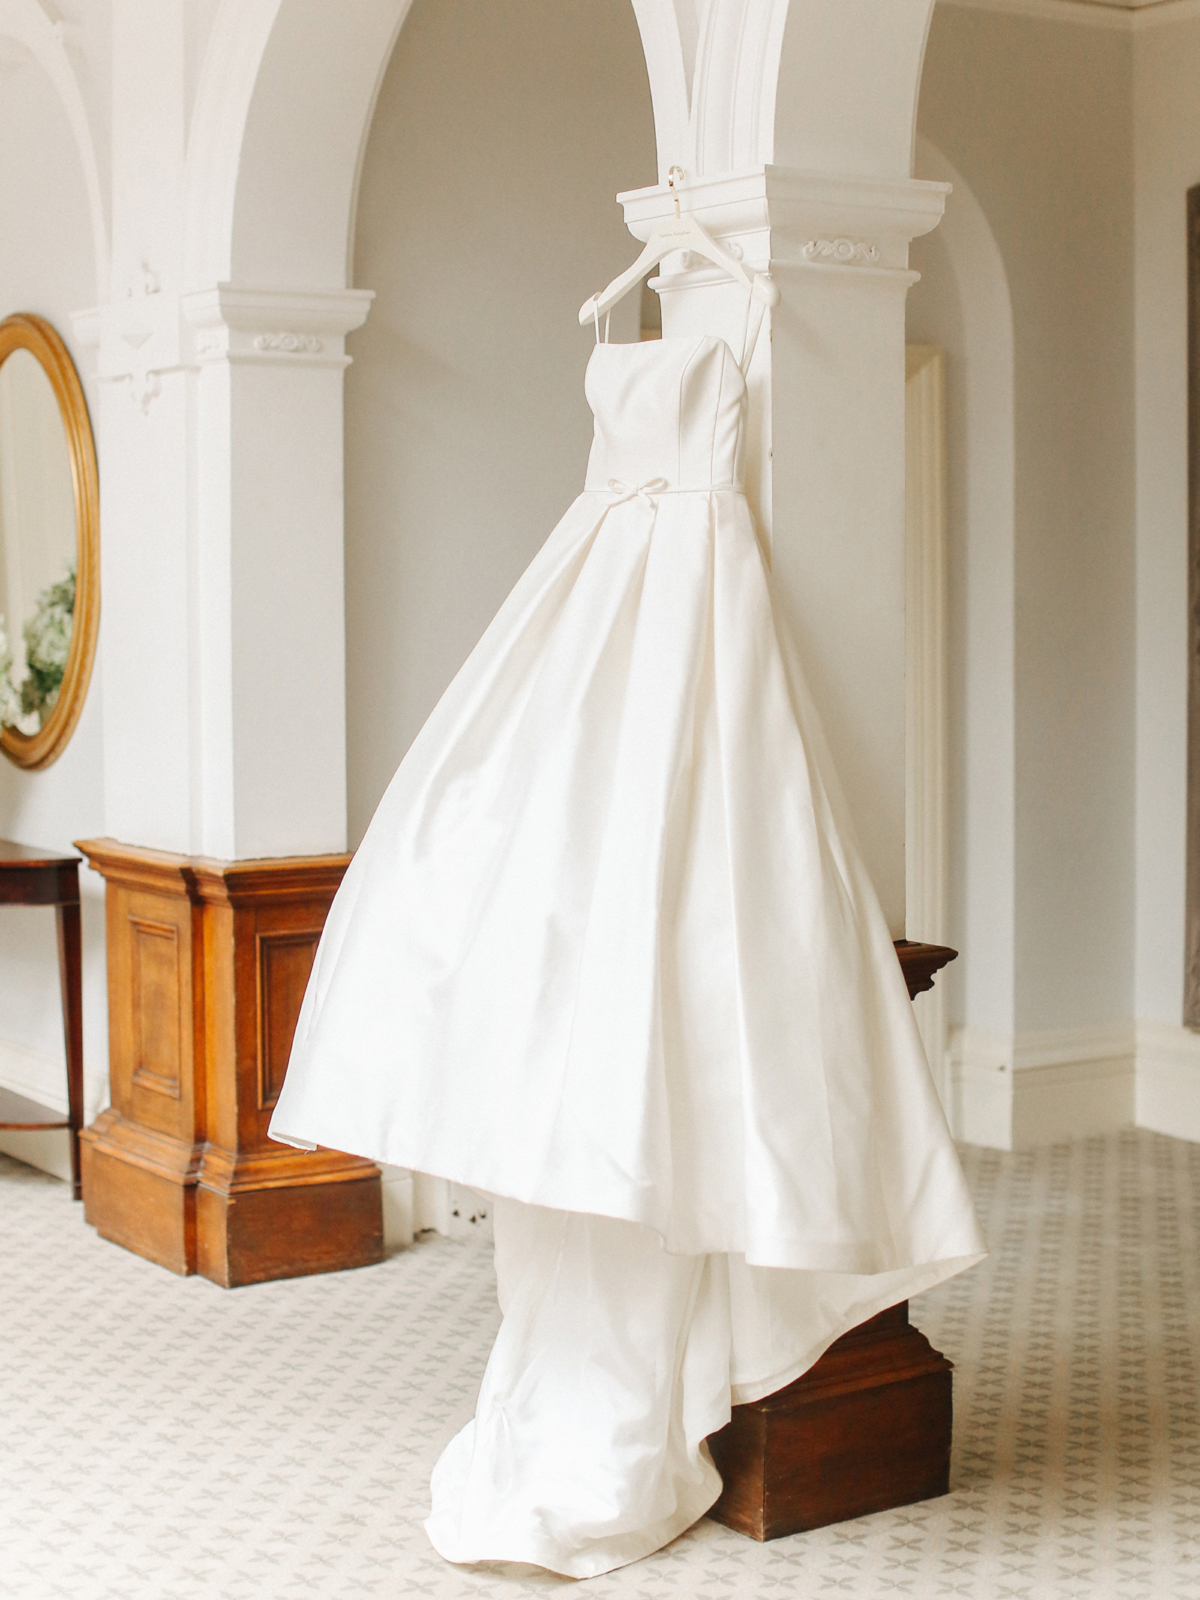 Strapless Caroline Castigliano gown with full skirt - A Caroline Castigliano Gown for a Chic and Classic Manor House Wedding in Shades of Peach